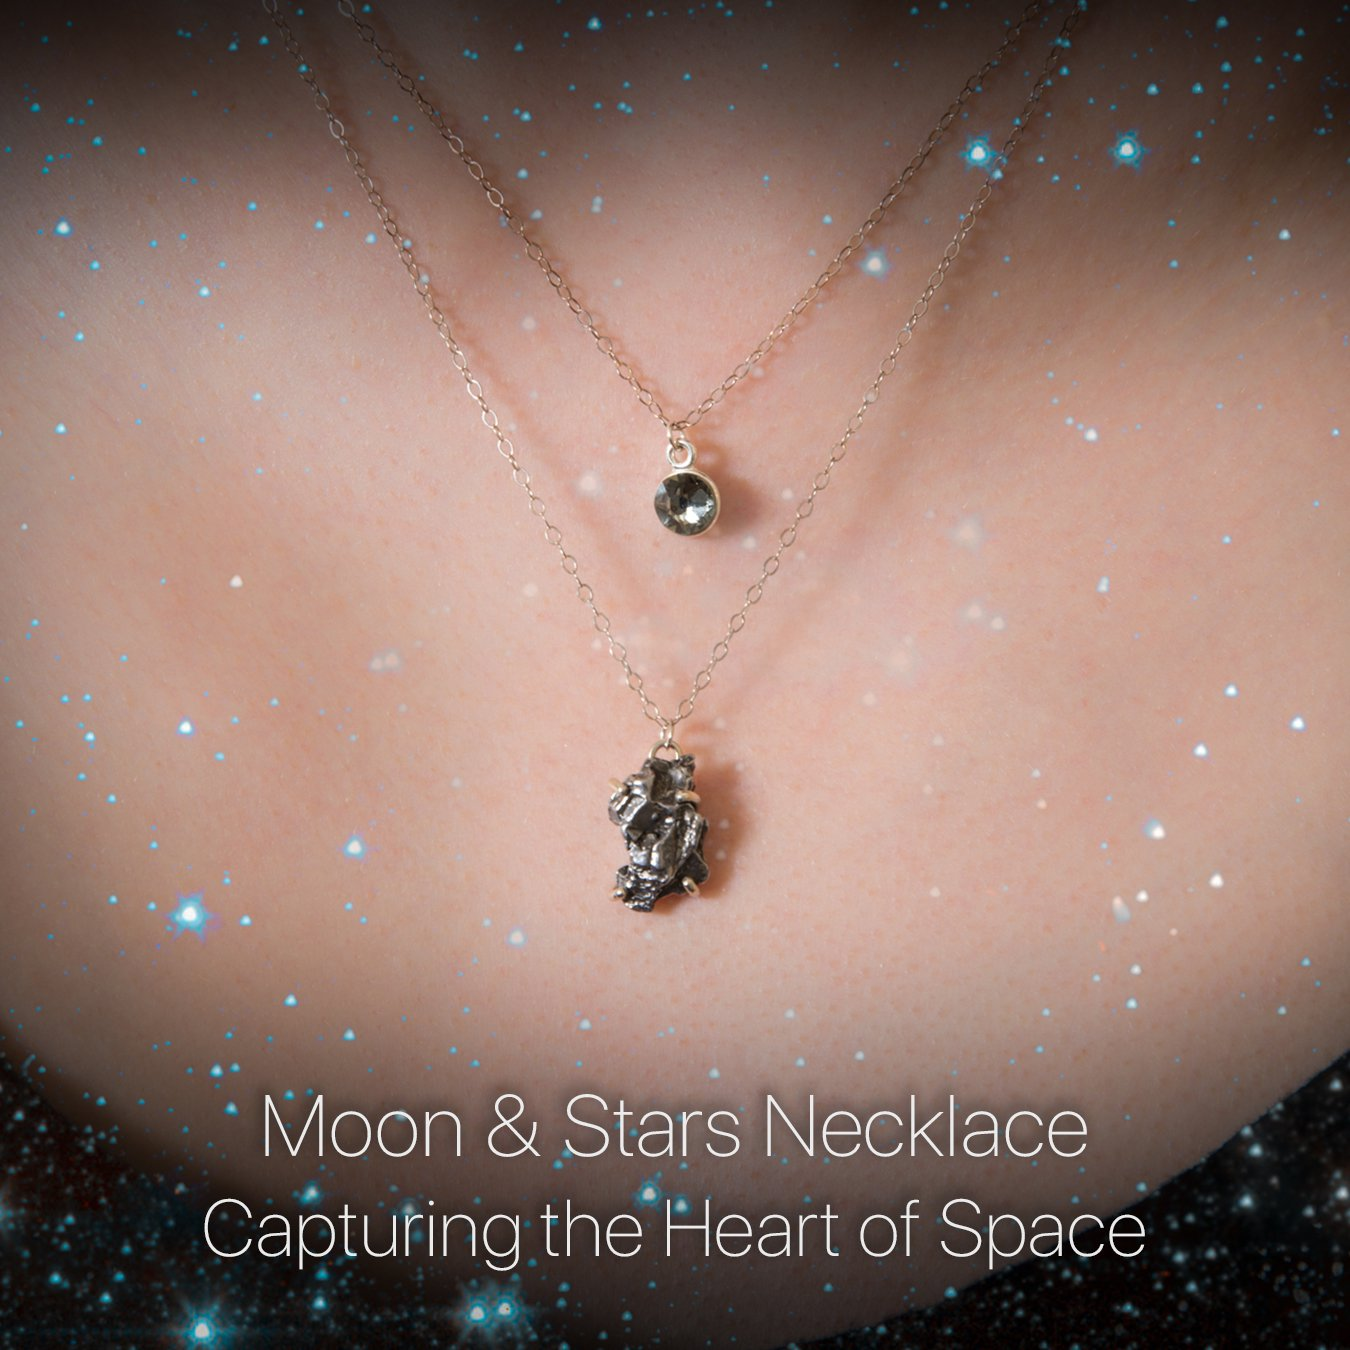 Details about the Moon & Stars Necklace